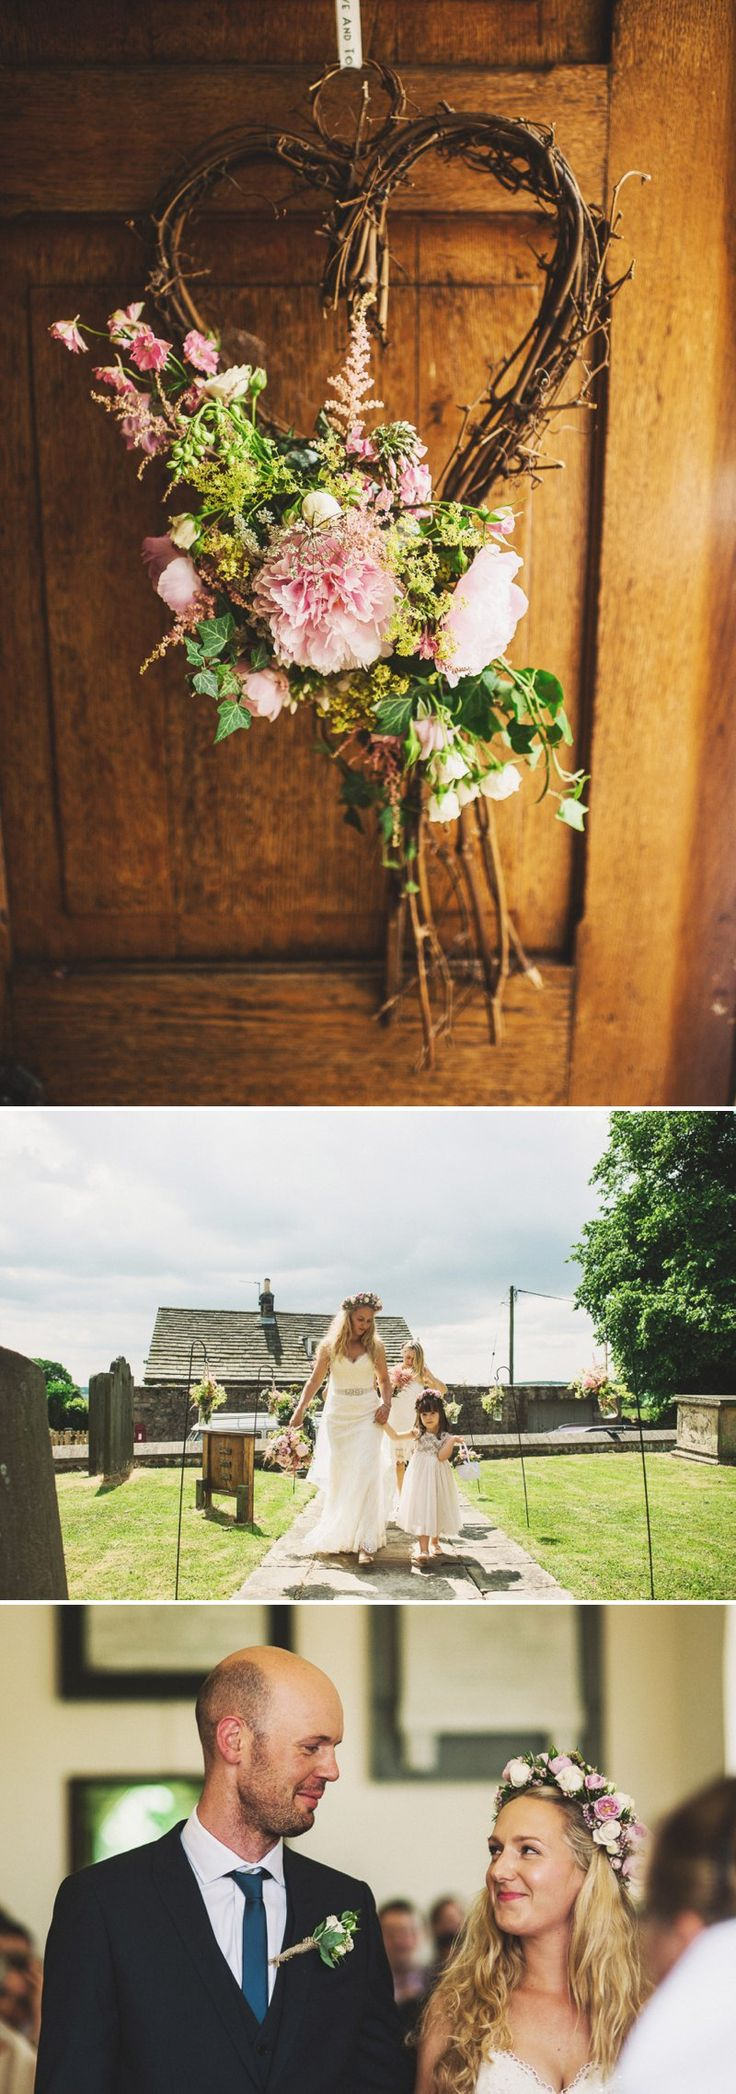 Rustic Marquee Wedding At Mallard Grange In Yorkshire With A Dusty Pink Cream And Grey Colour Scheme With Bride In Gown From Eternity Bridal...